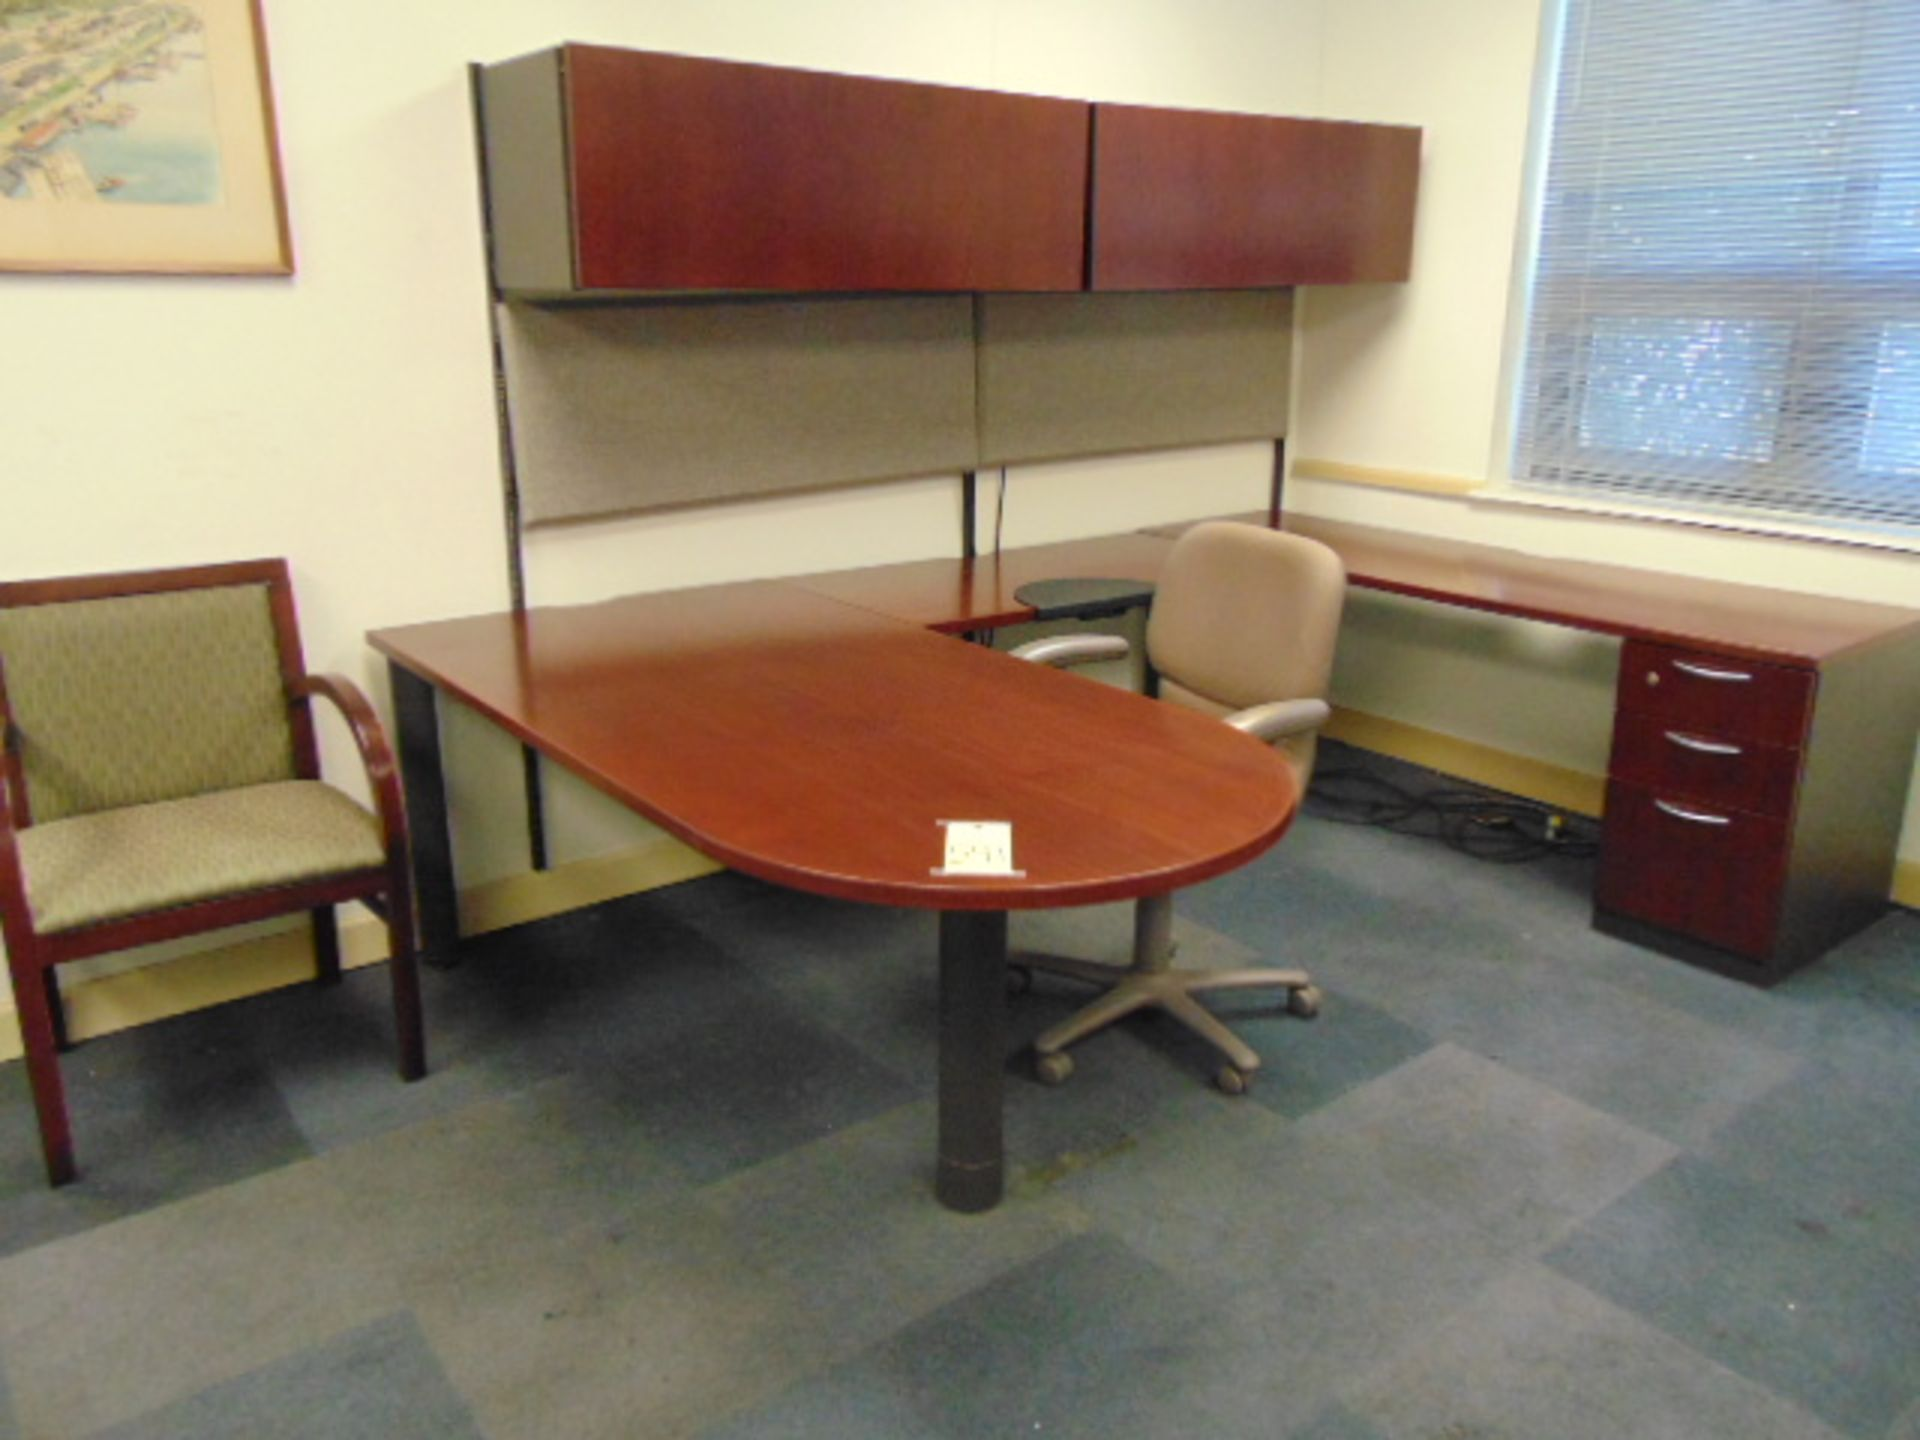 Lot 541 - LOT CONSISTING OF: V-shaped wood desk, w/legal size file cabinet, & (2) chairs